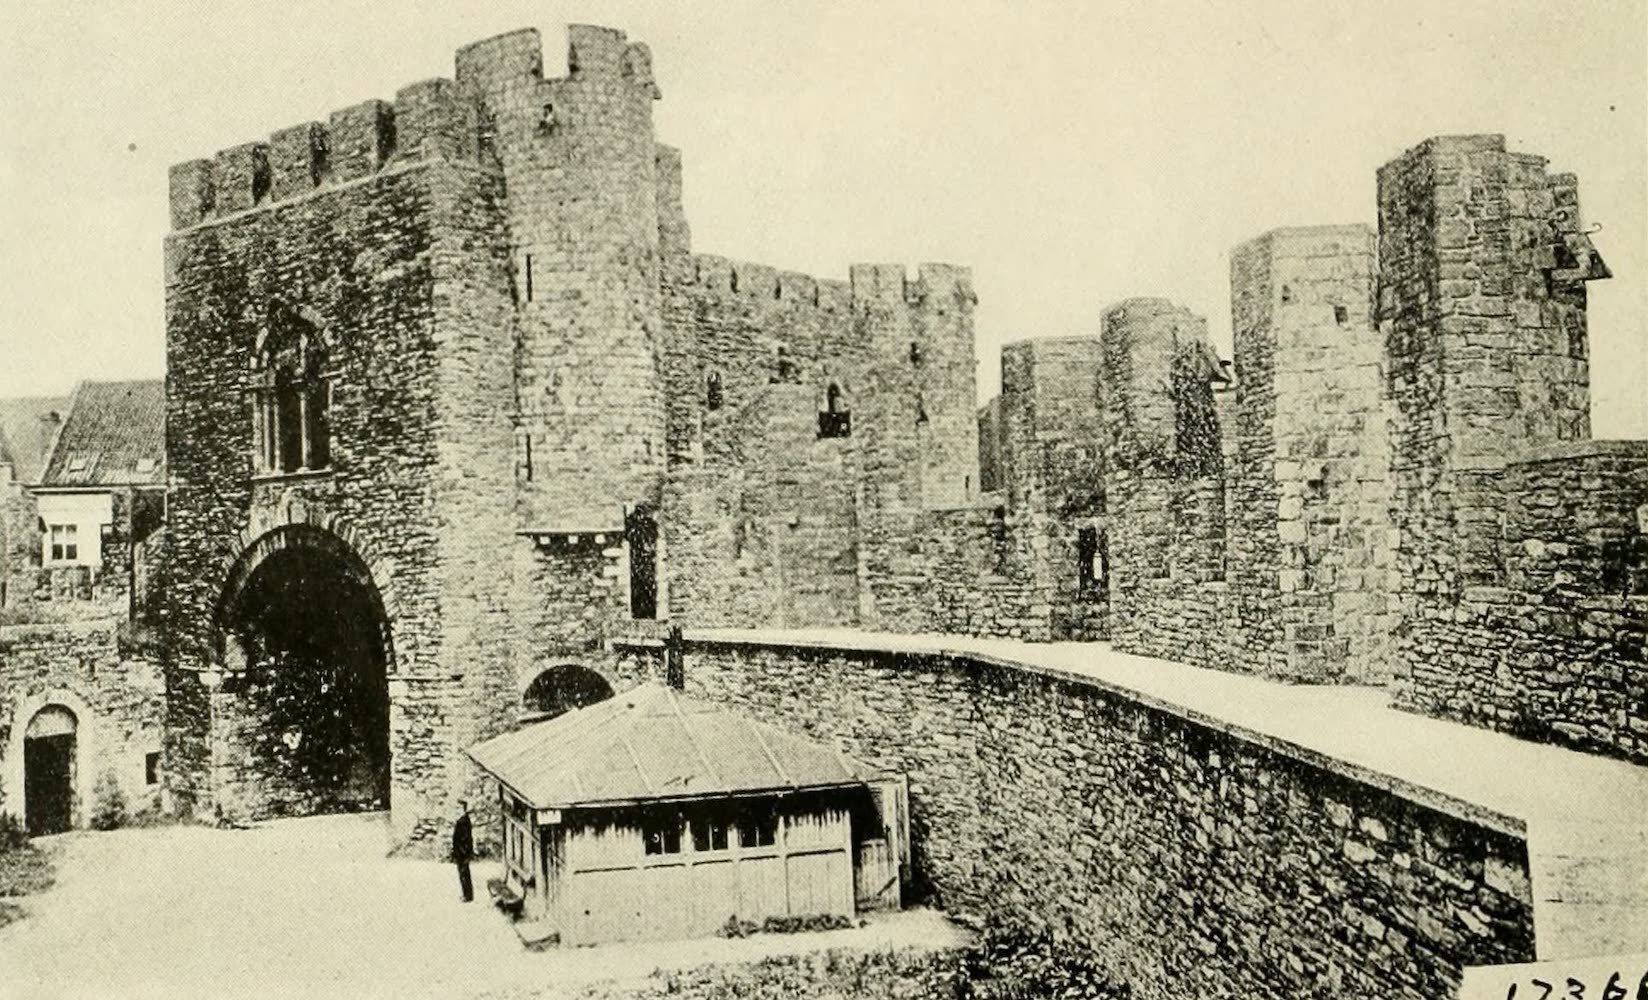 Laird & Lee's World's War Glimpses - Fortified Battlements at Ghent (1914)